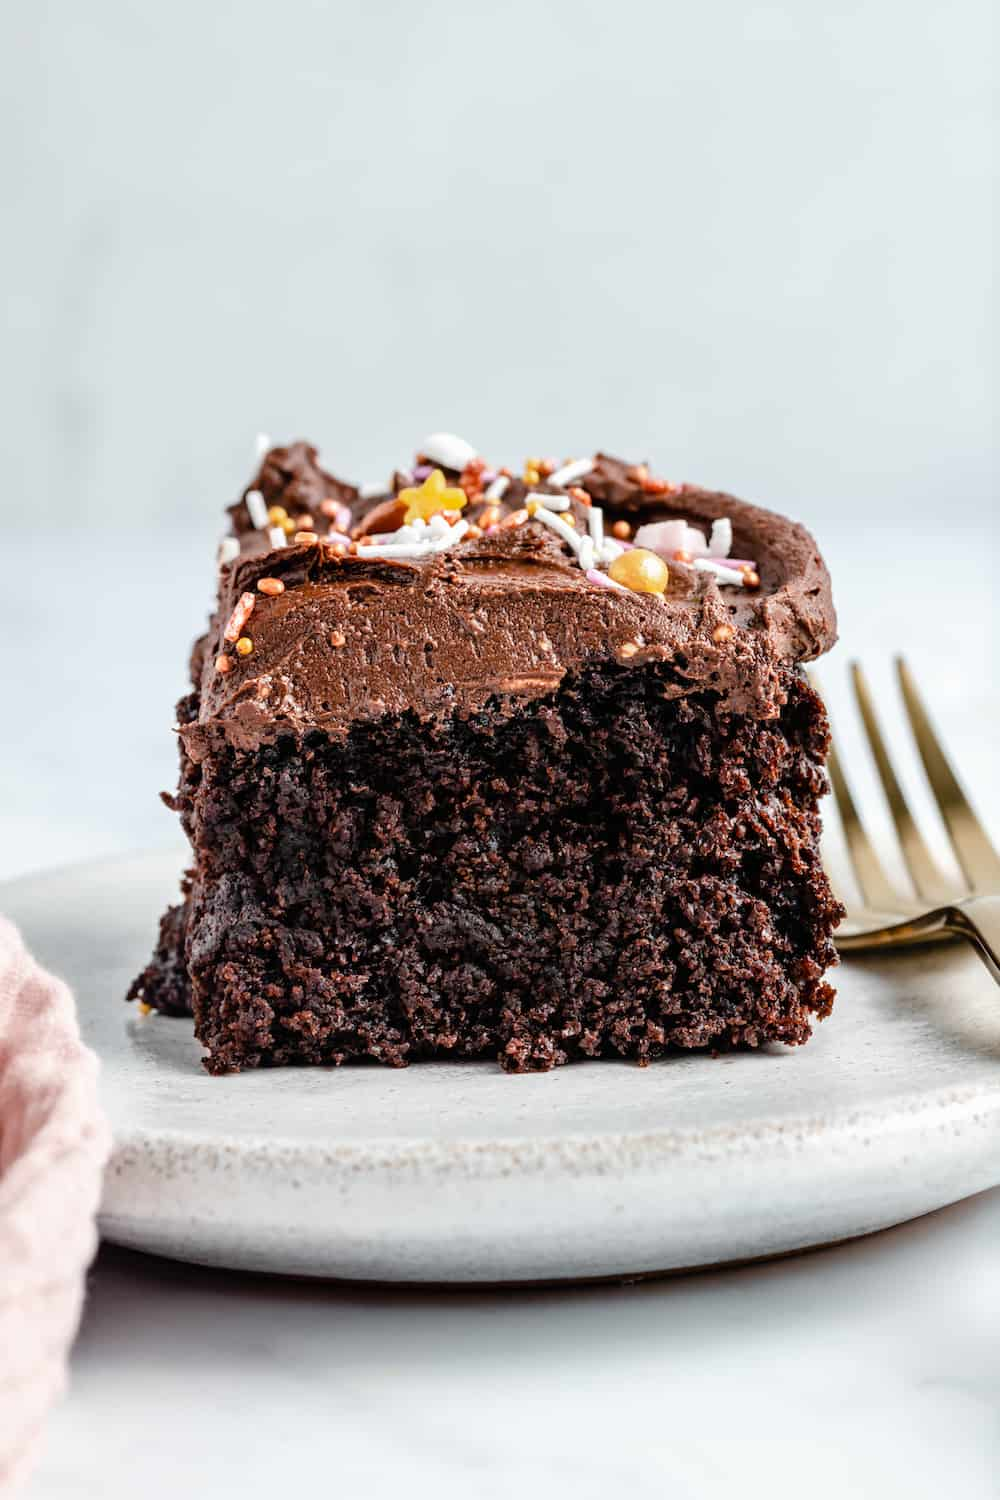 Square of chocolate sheet cake with sprinkles.